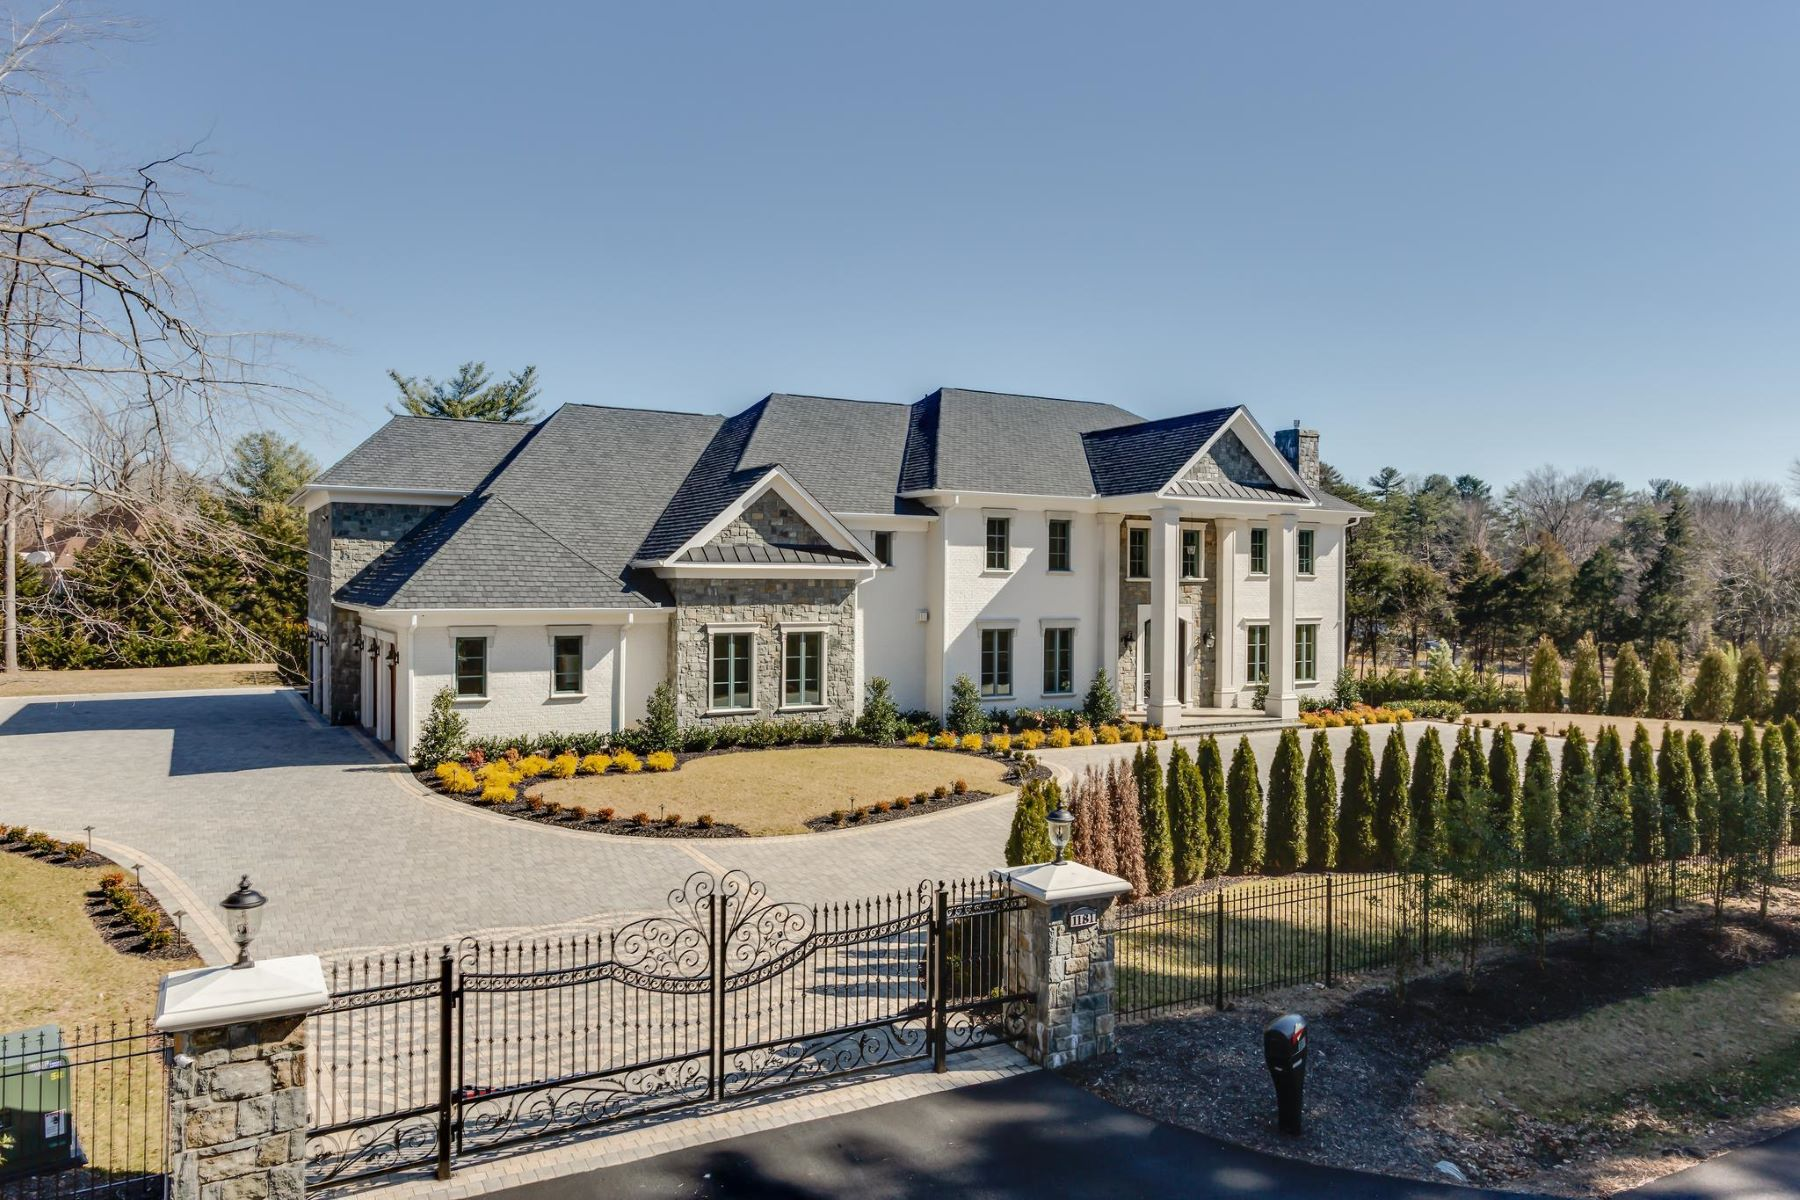 Single Family Homes for Sale at 1181 Ballantrae Ln McLean, Virginia 22101 United States